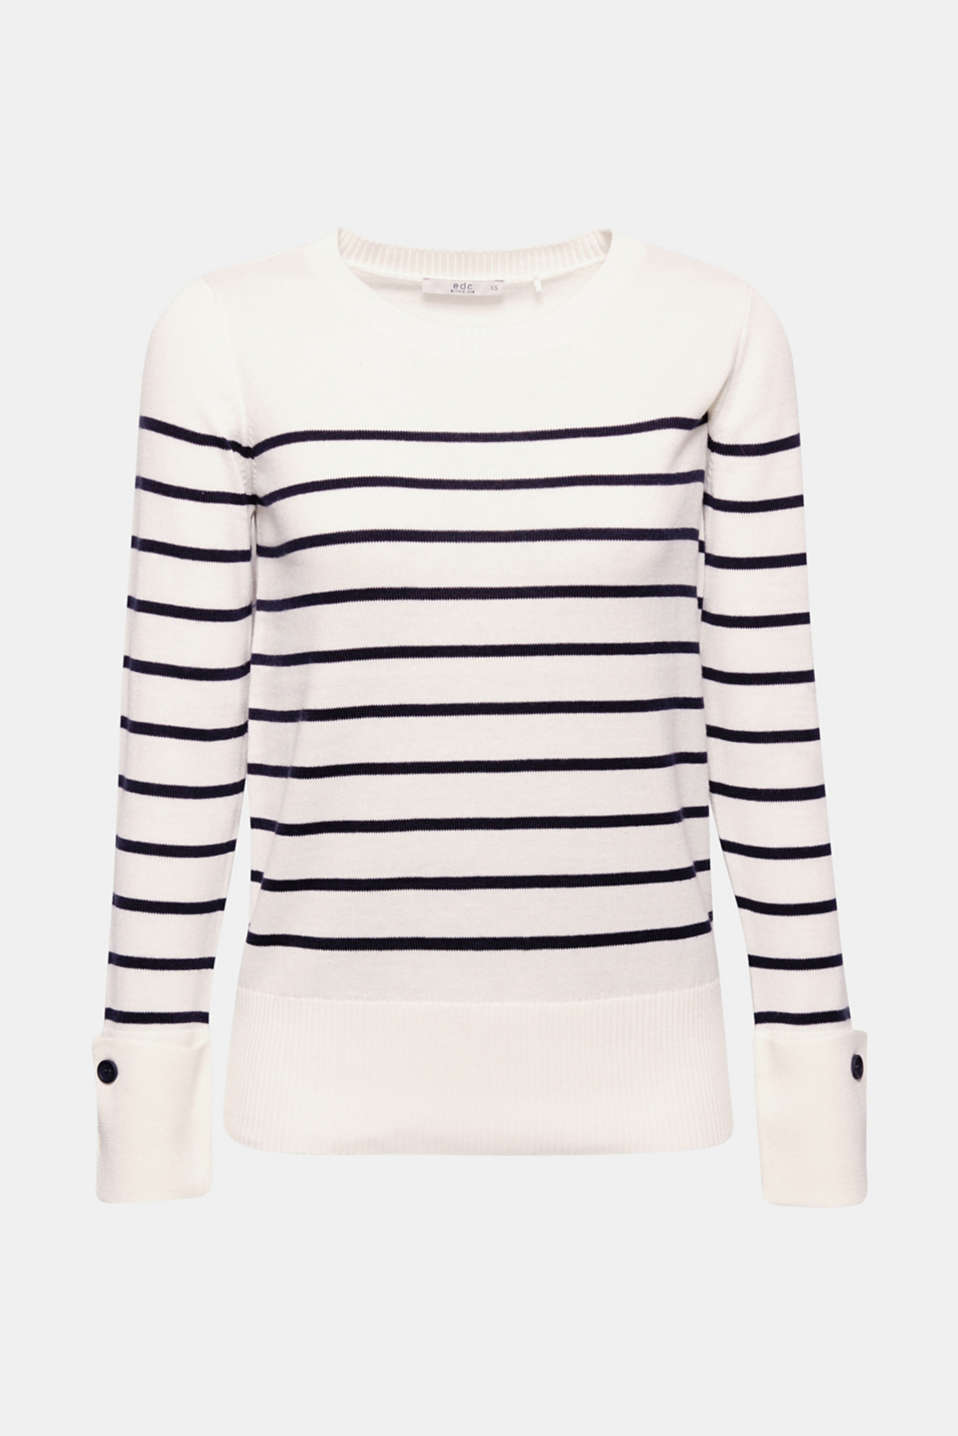 We love nautical stripes – even more when details like the turn-up buttoned cuffs on the sleeves provide a new, modern look!